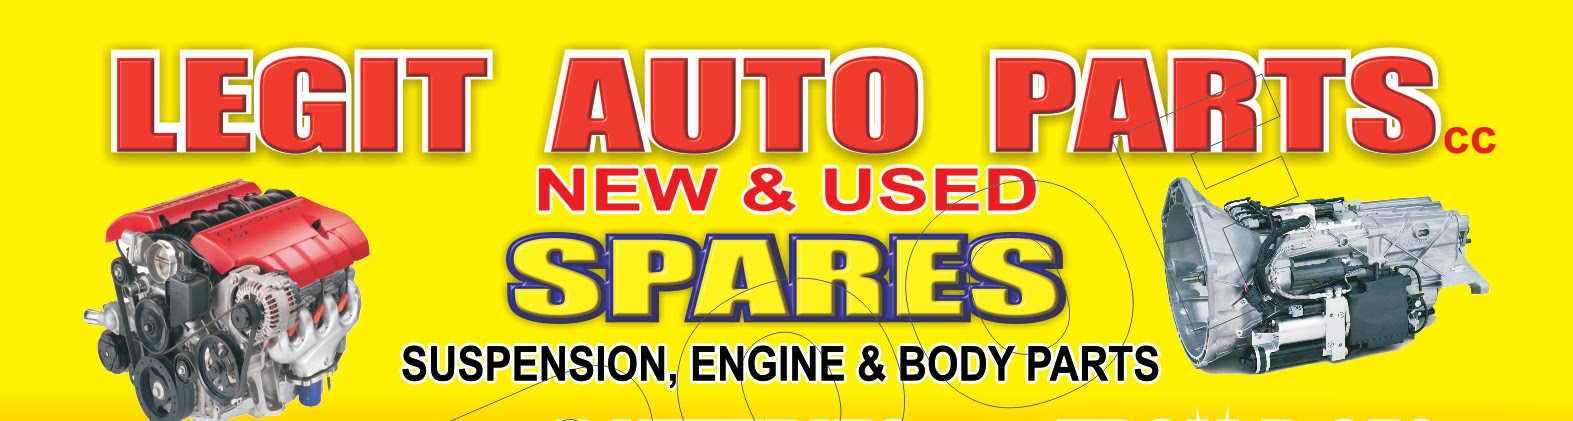 AUDI NEW AND USED SPARES ! .... LEGIT AUTO PARTS